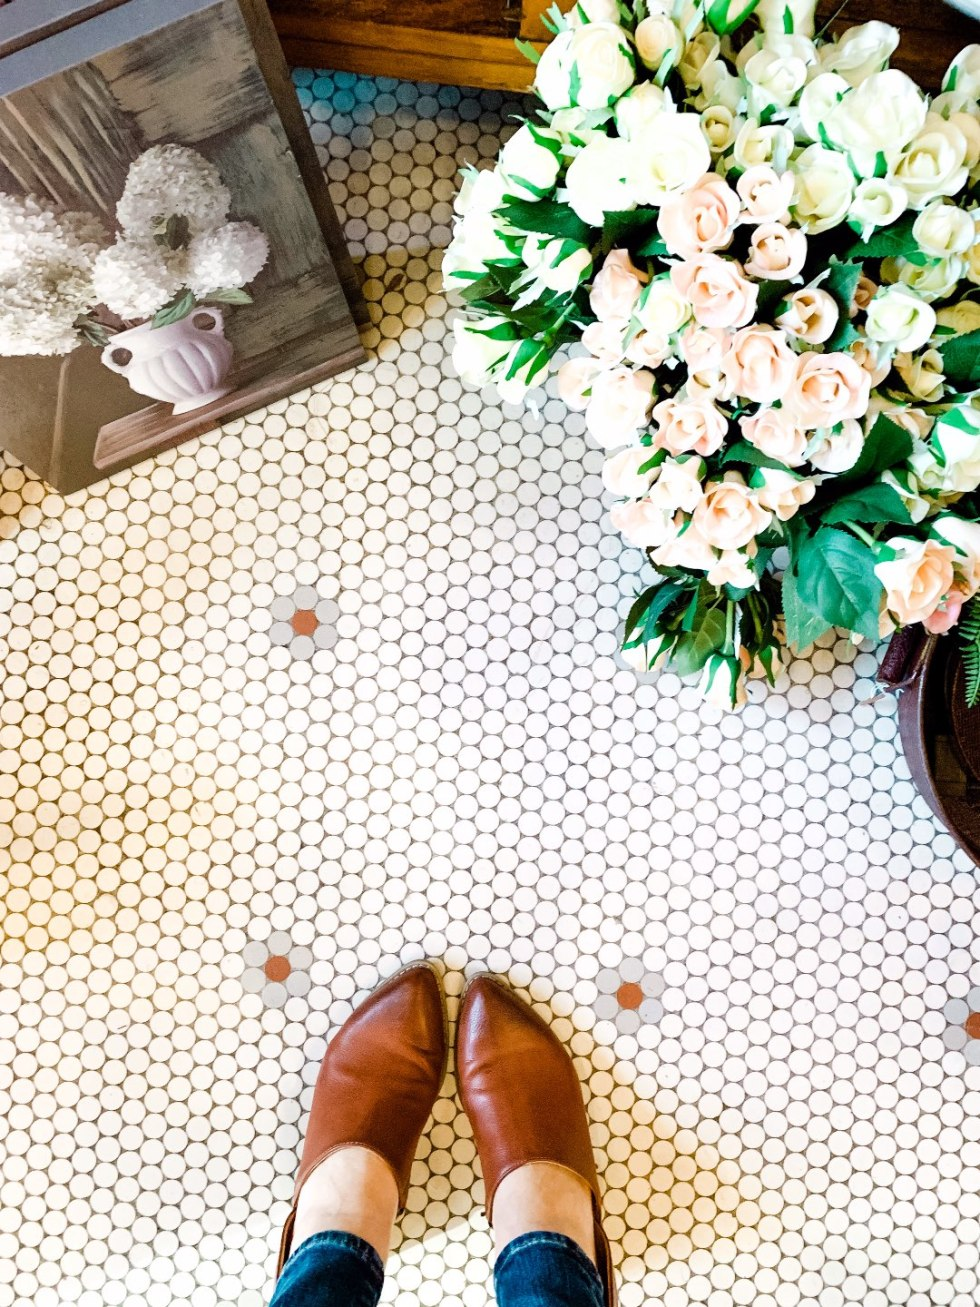 Eastern North Carolina Travel Guide: Top 10 Things to Do in Goldsboro NC by popular North Carolina blog, I'm Fixin' To: image of a penny tile floor and bucket of roses.